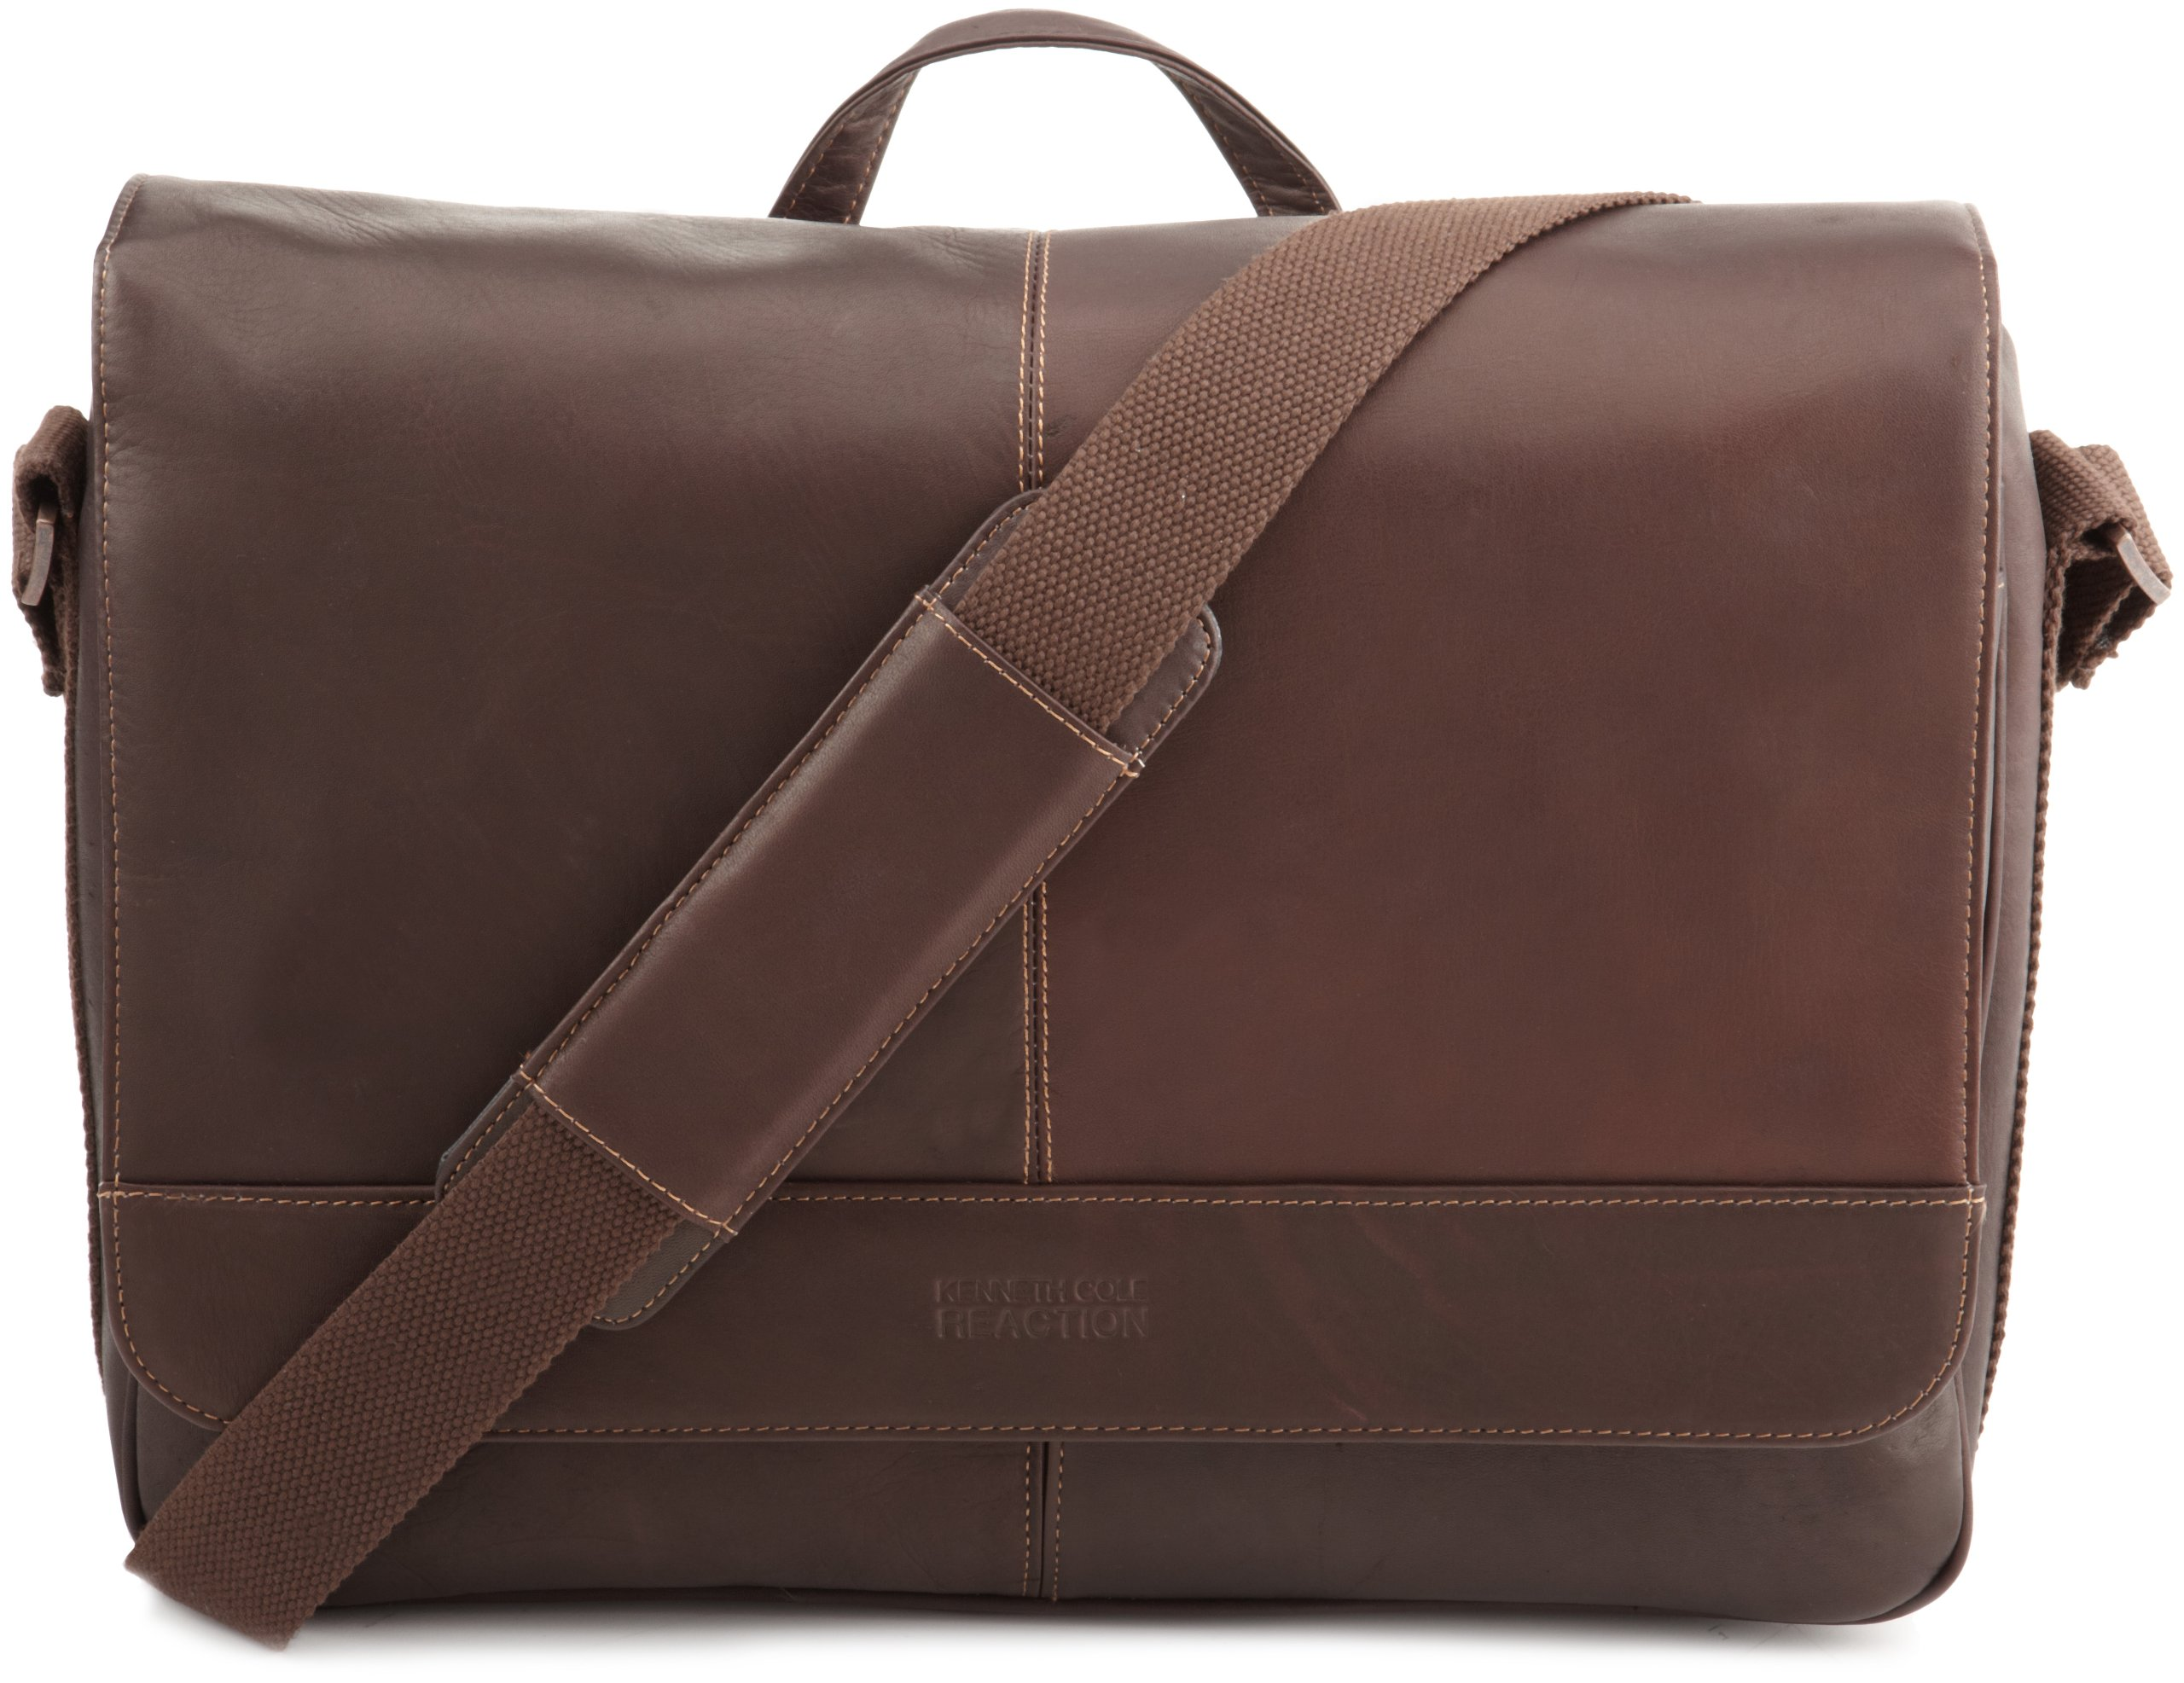 Kenneth Cole Reaction ''Risky Business'' Colombian Leather Flapover Cross Body Messenger Bag, Brown, One Size